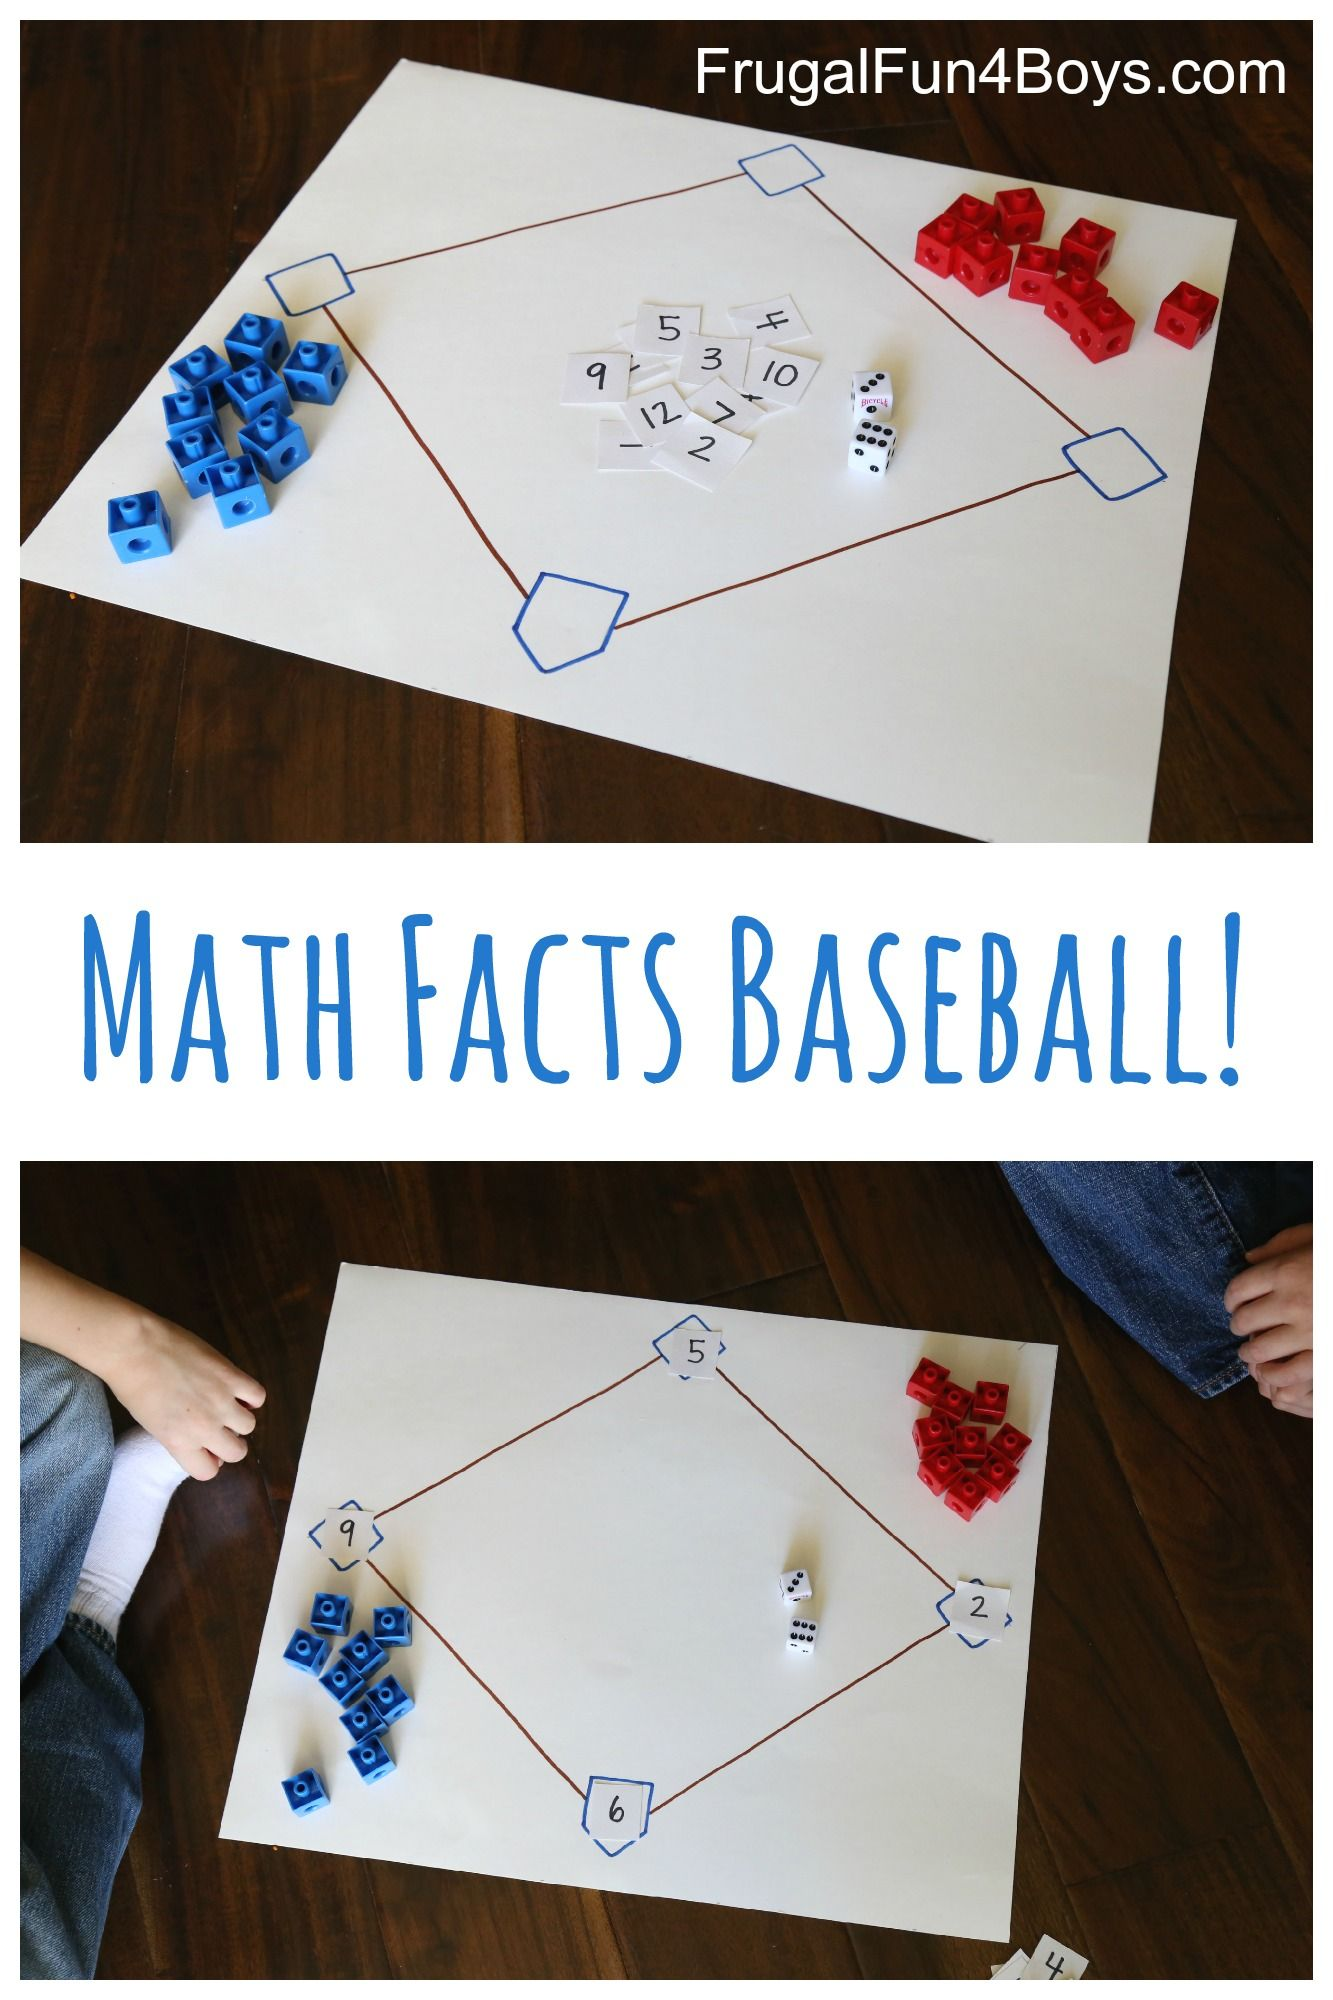 Math Facts Baseball An Awesome Way To Practice Math Frugal Fun For Boys And Girls Math Facts Math Methods Homeschool Math